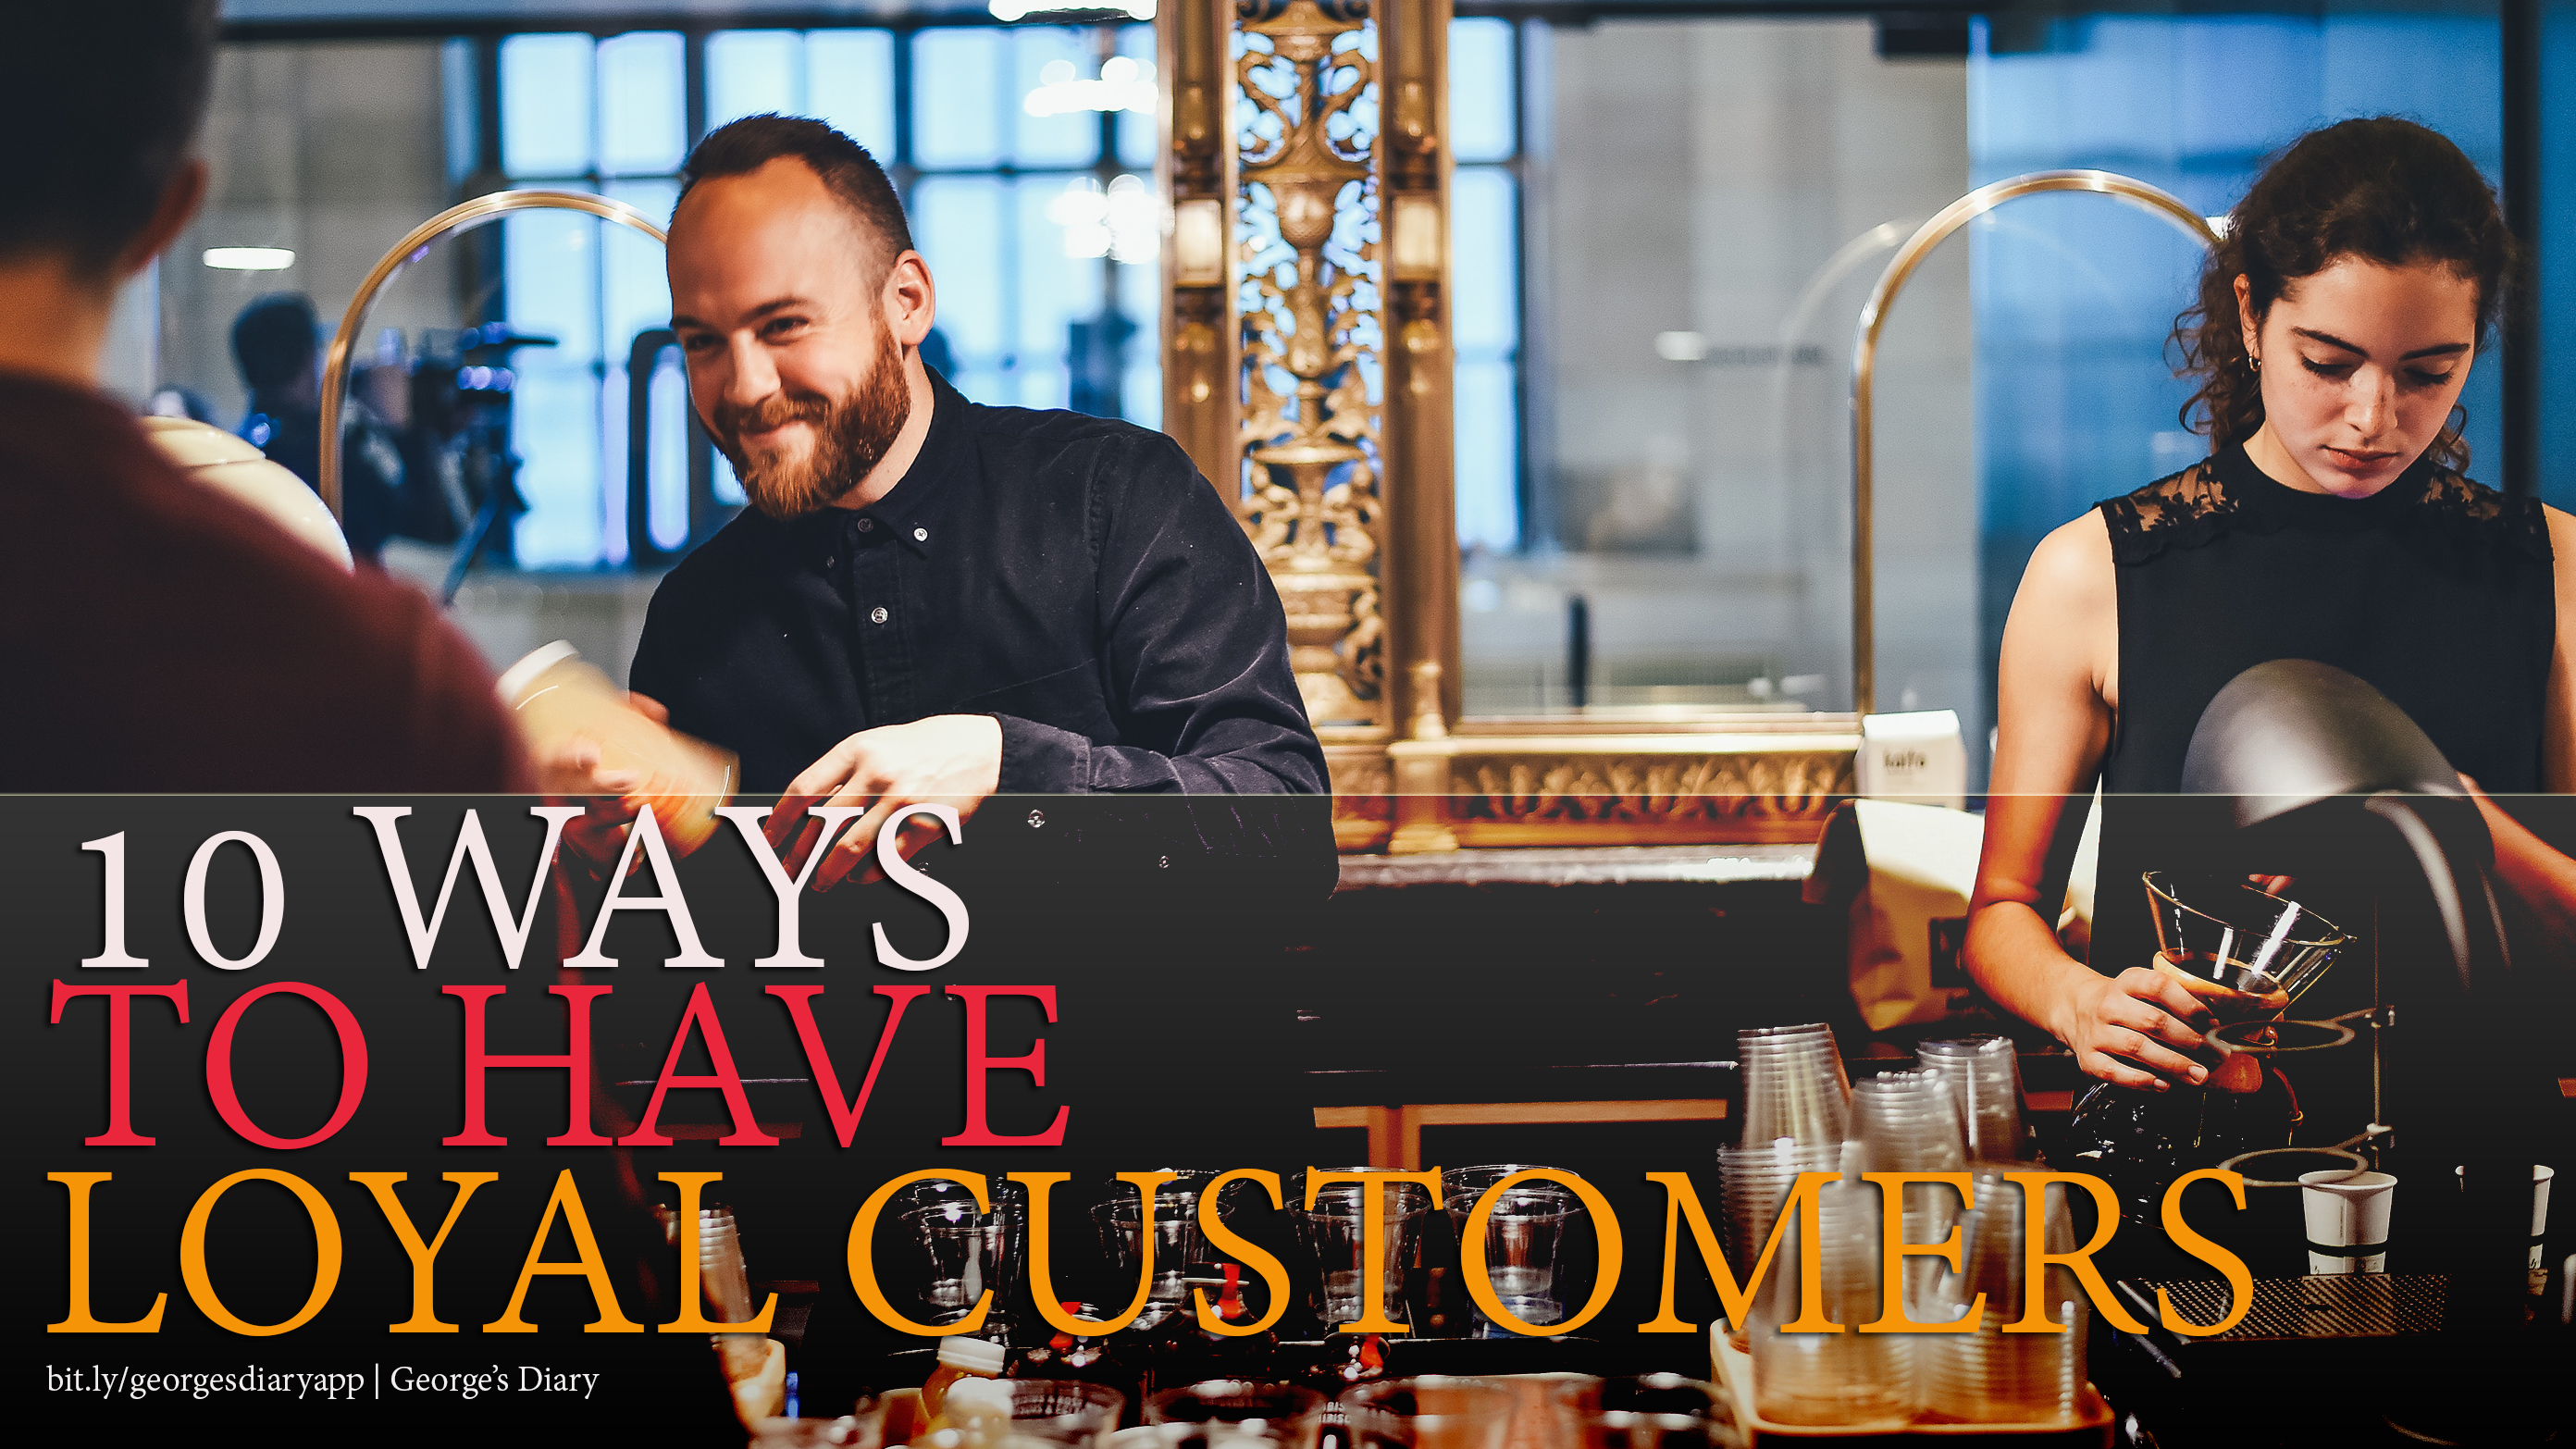 10 WAYS TO HAVE LOYAL CUSTOMERS